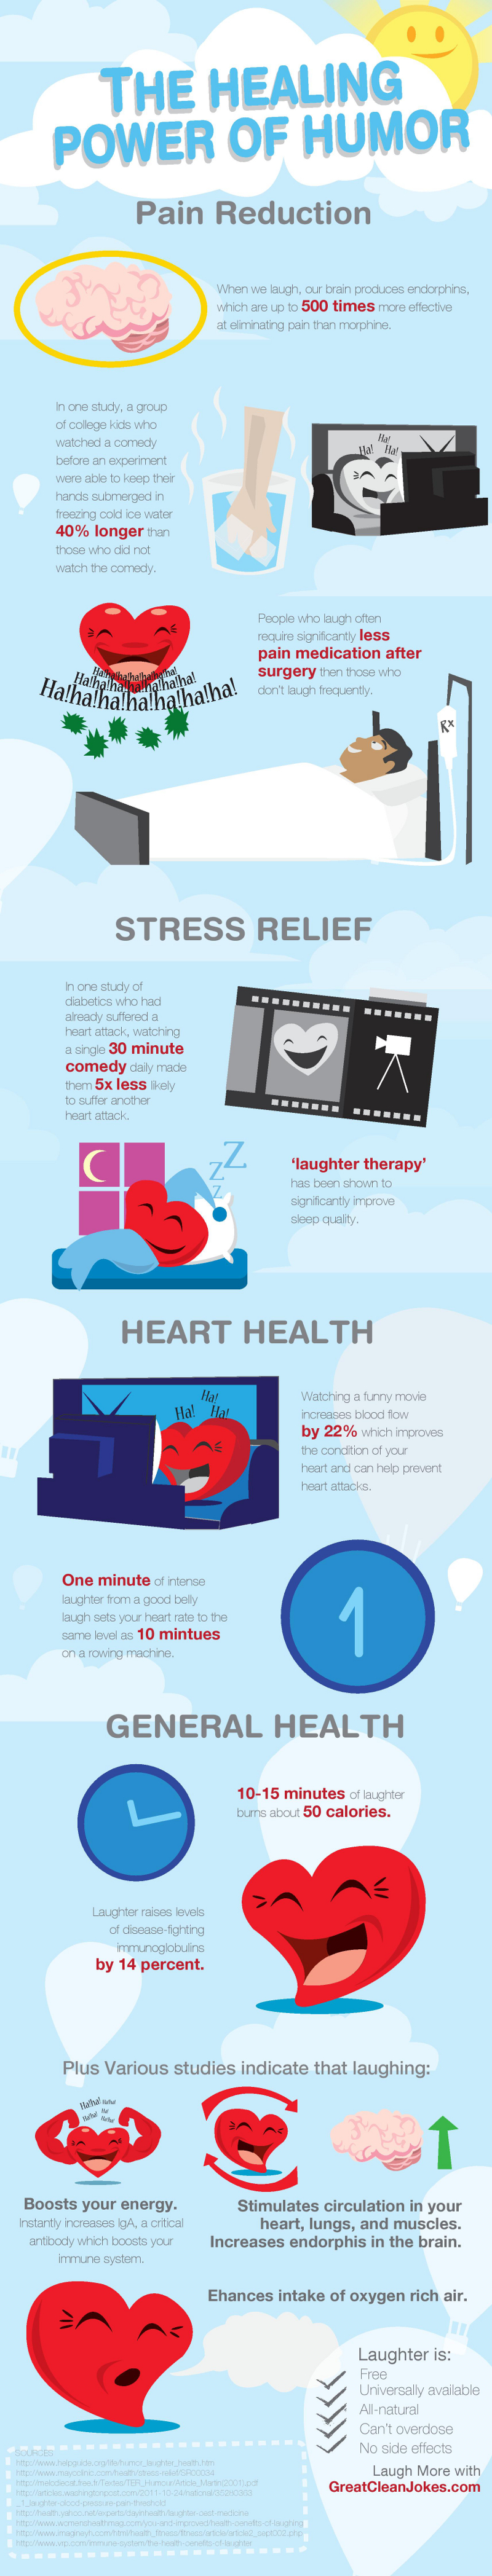 Positive Health Effects of Humor